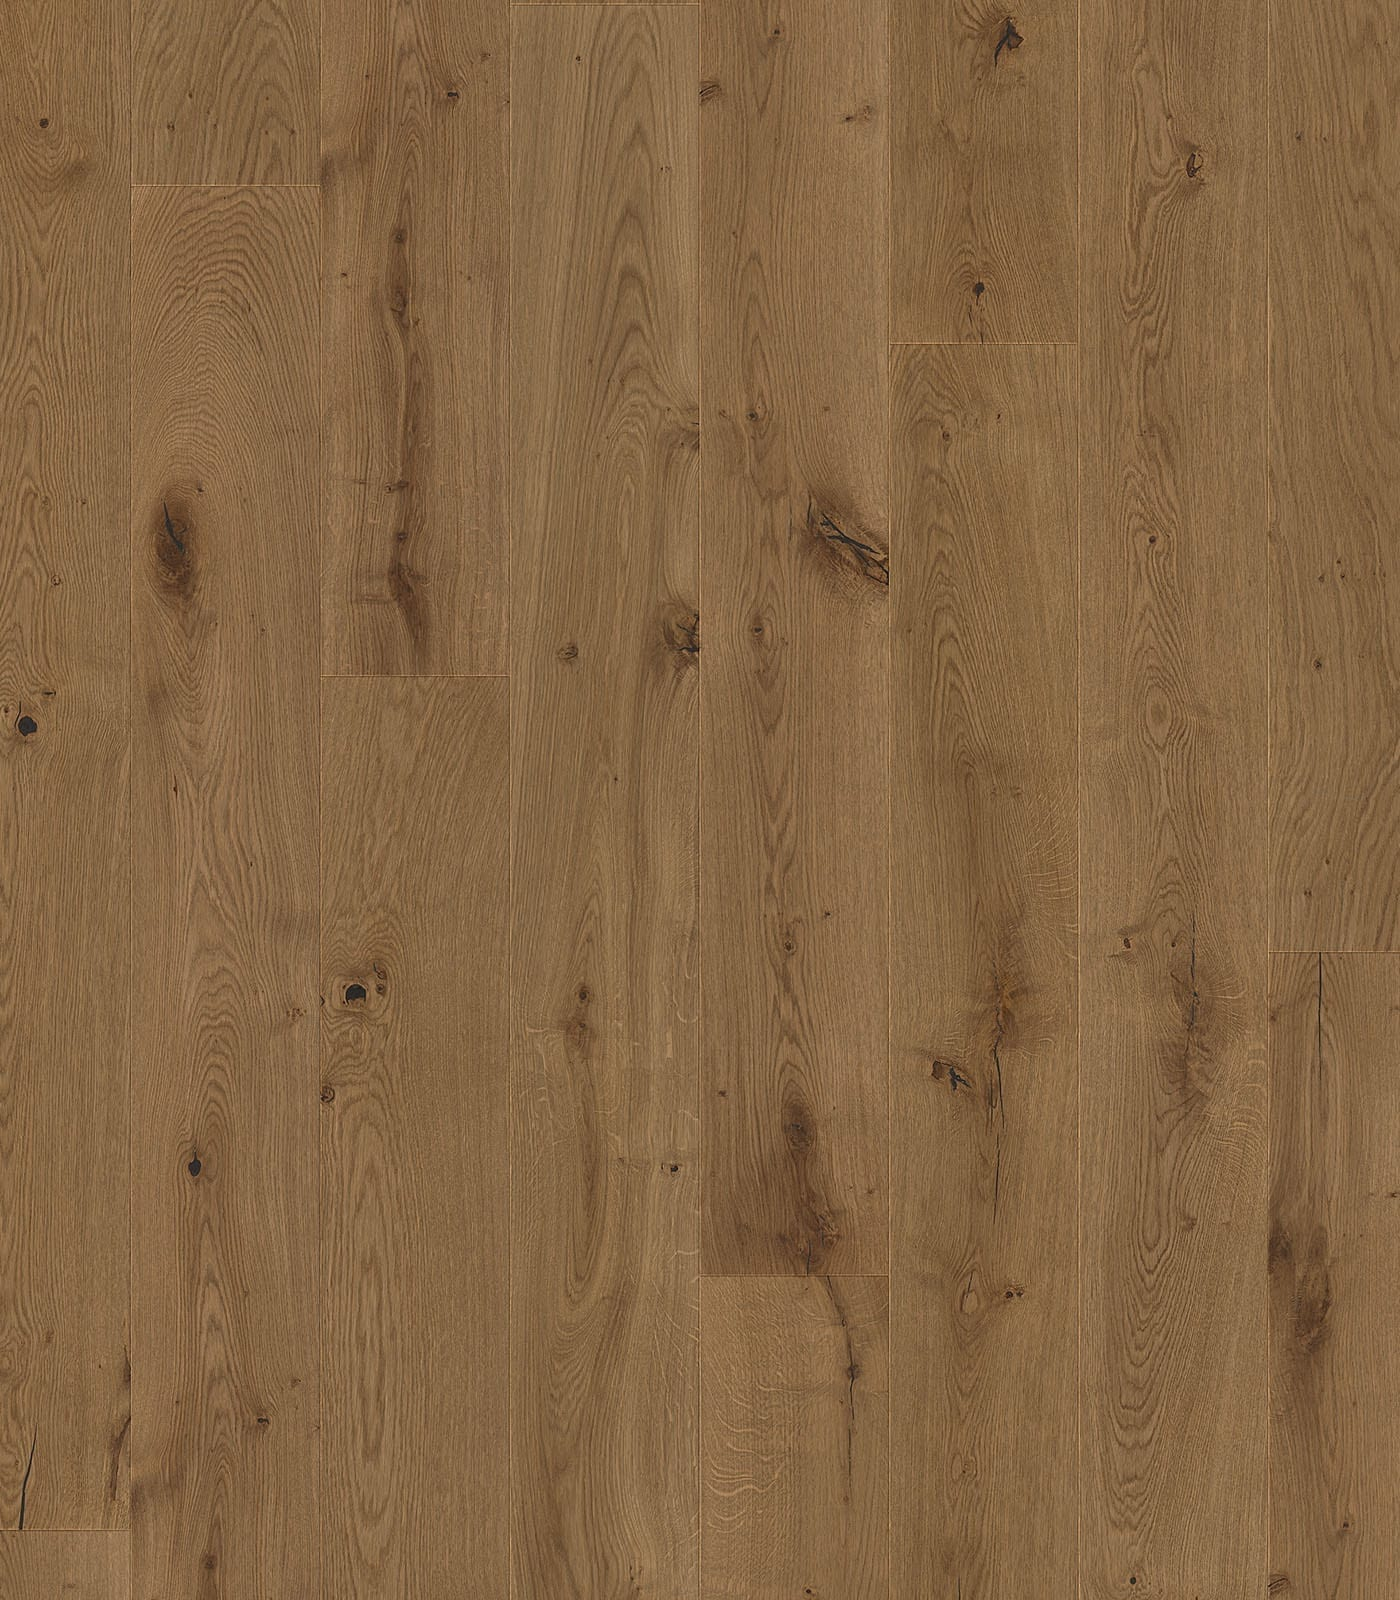 Cancun-European Oak floors-Lifestyle collection-flat